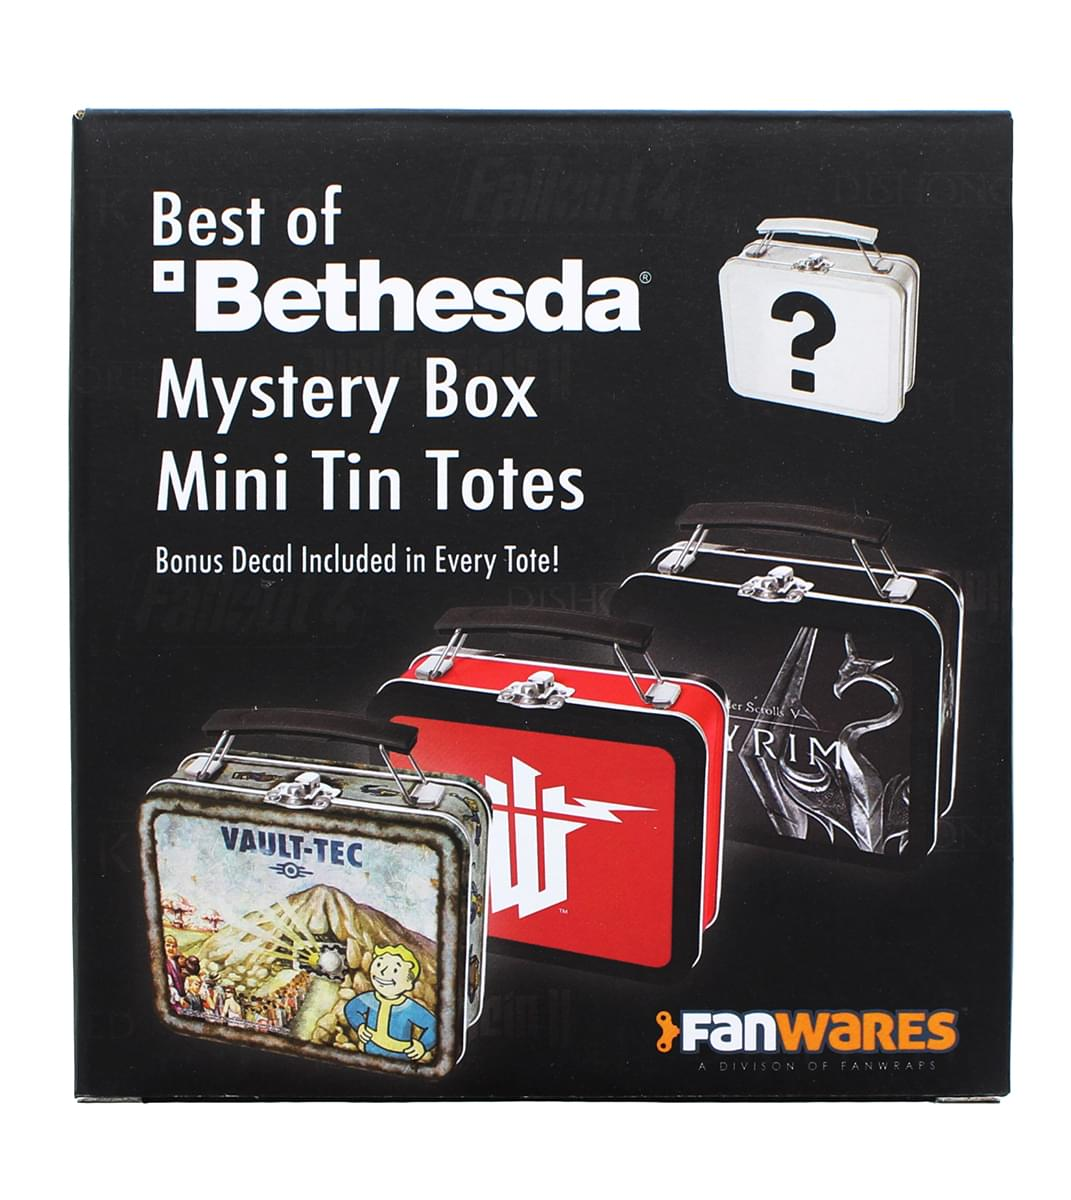 Bethesda Games Mystery Tin Mini Tote Lunchbox-Style Container |One Random Tote